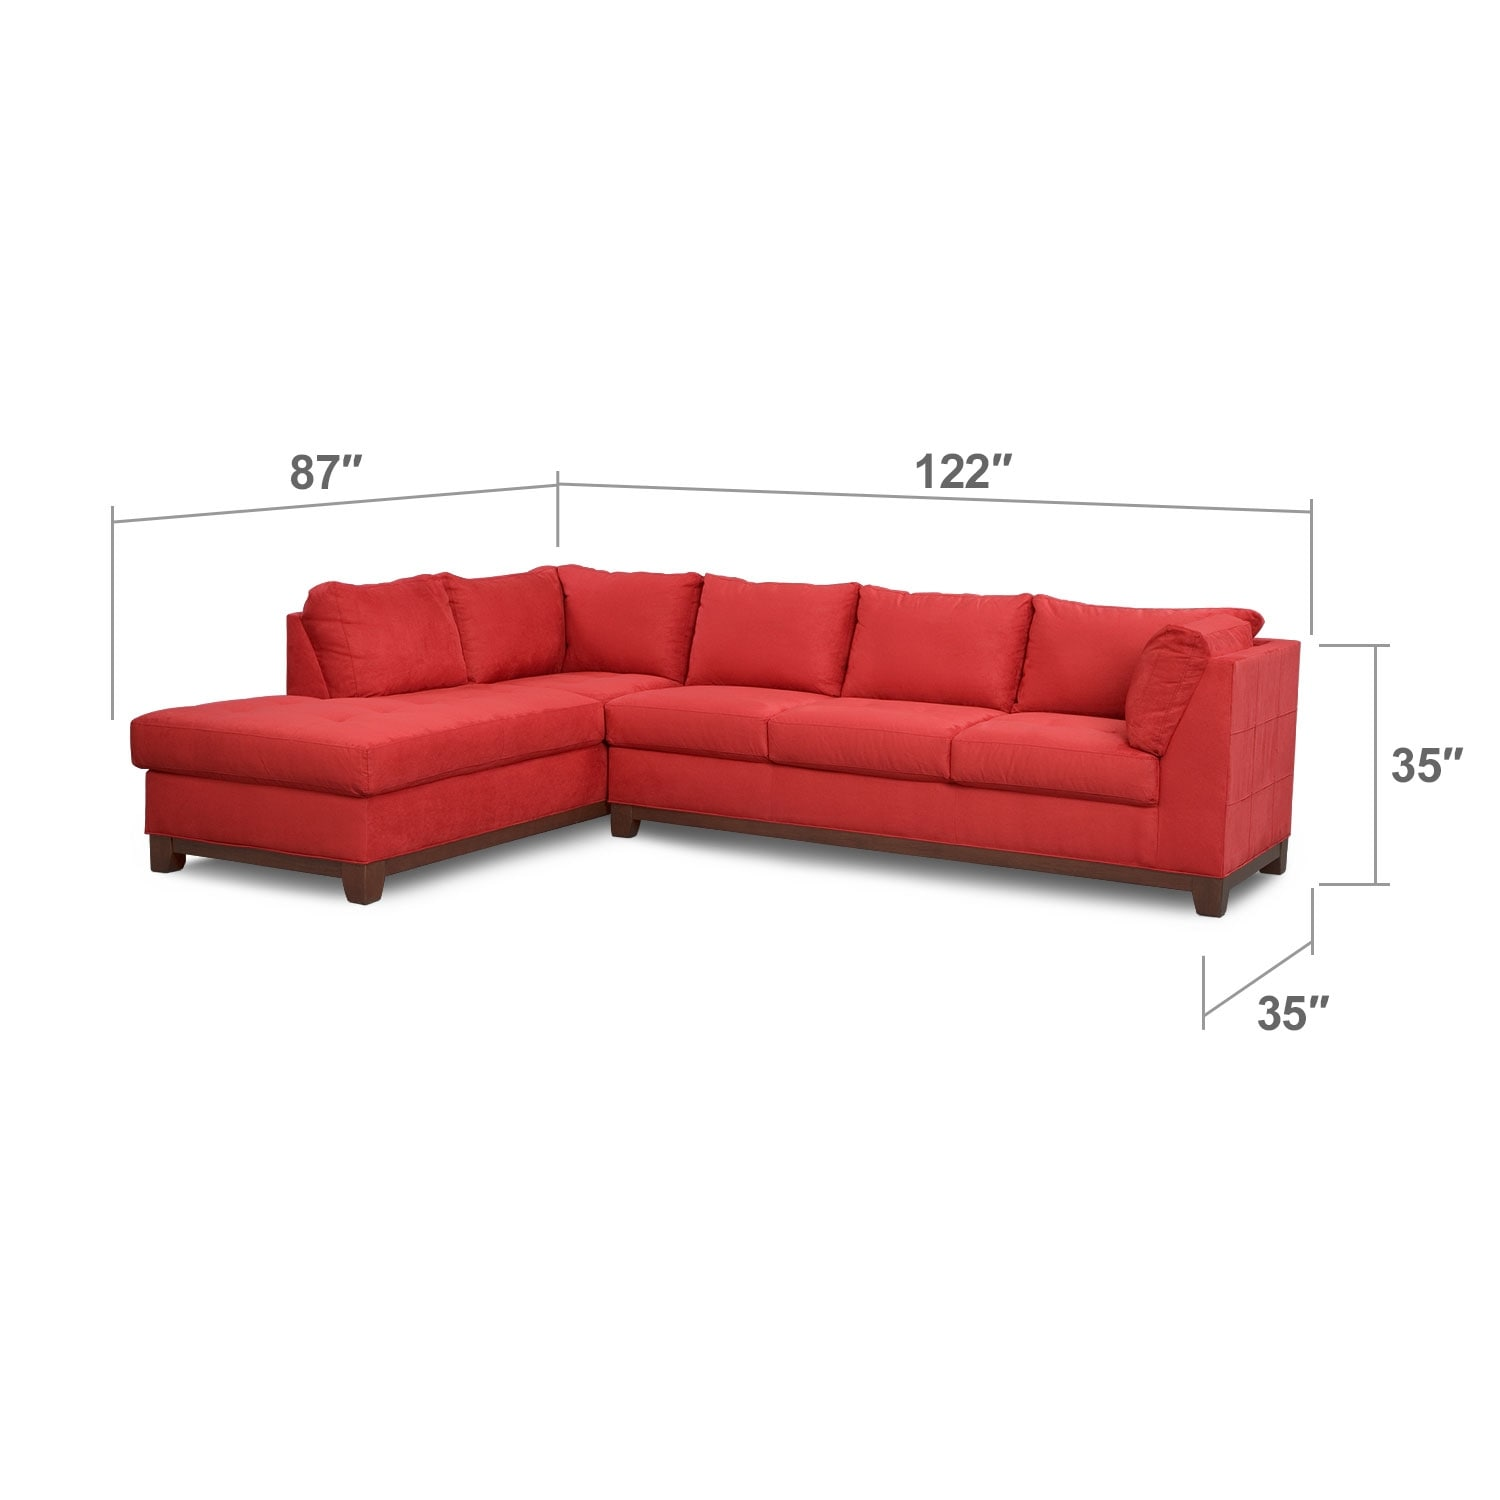 Living Room Furniture - Soho 2-Piece Sectional with Left-Facing Chaise - Red